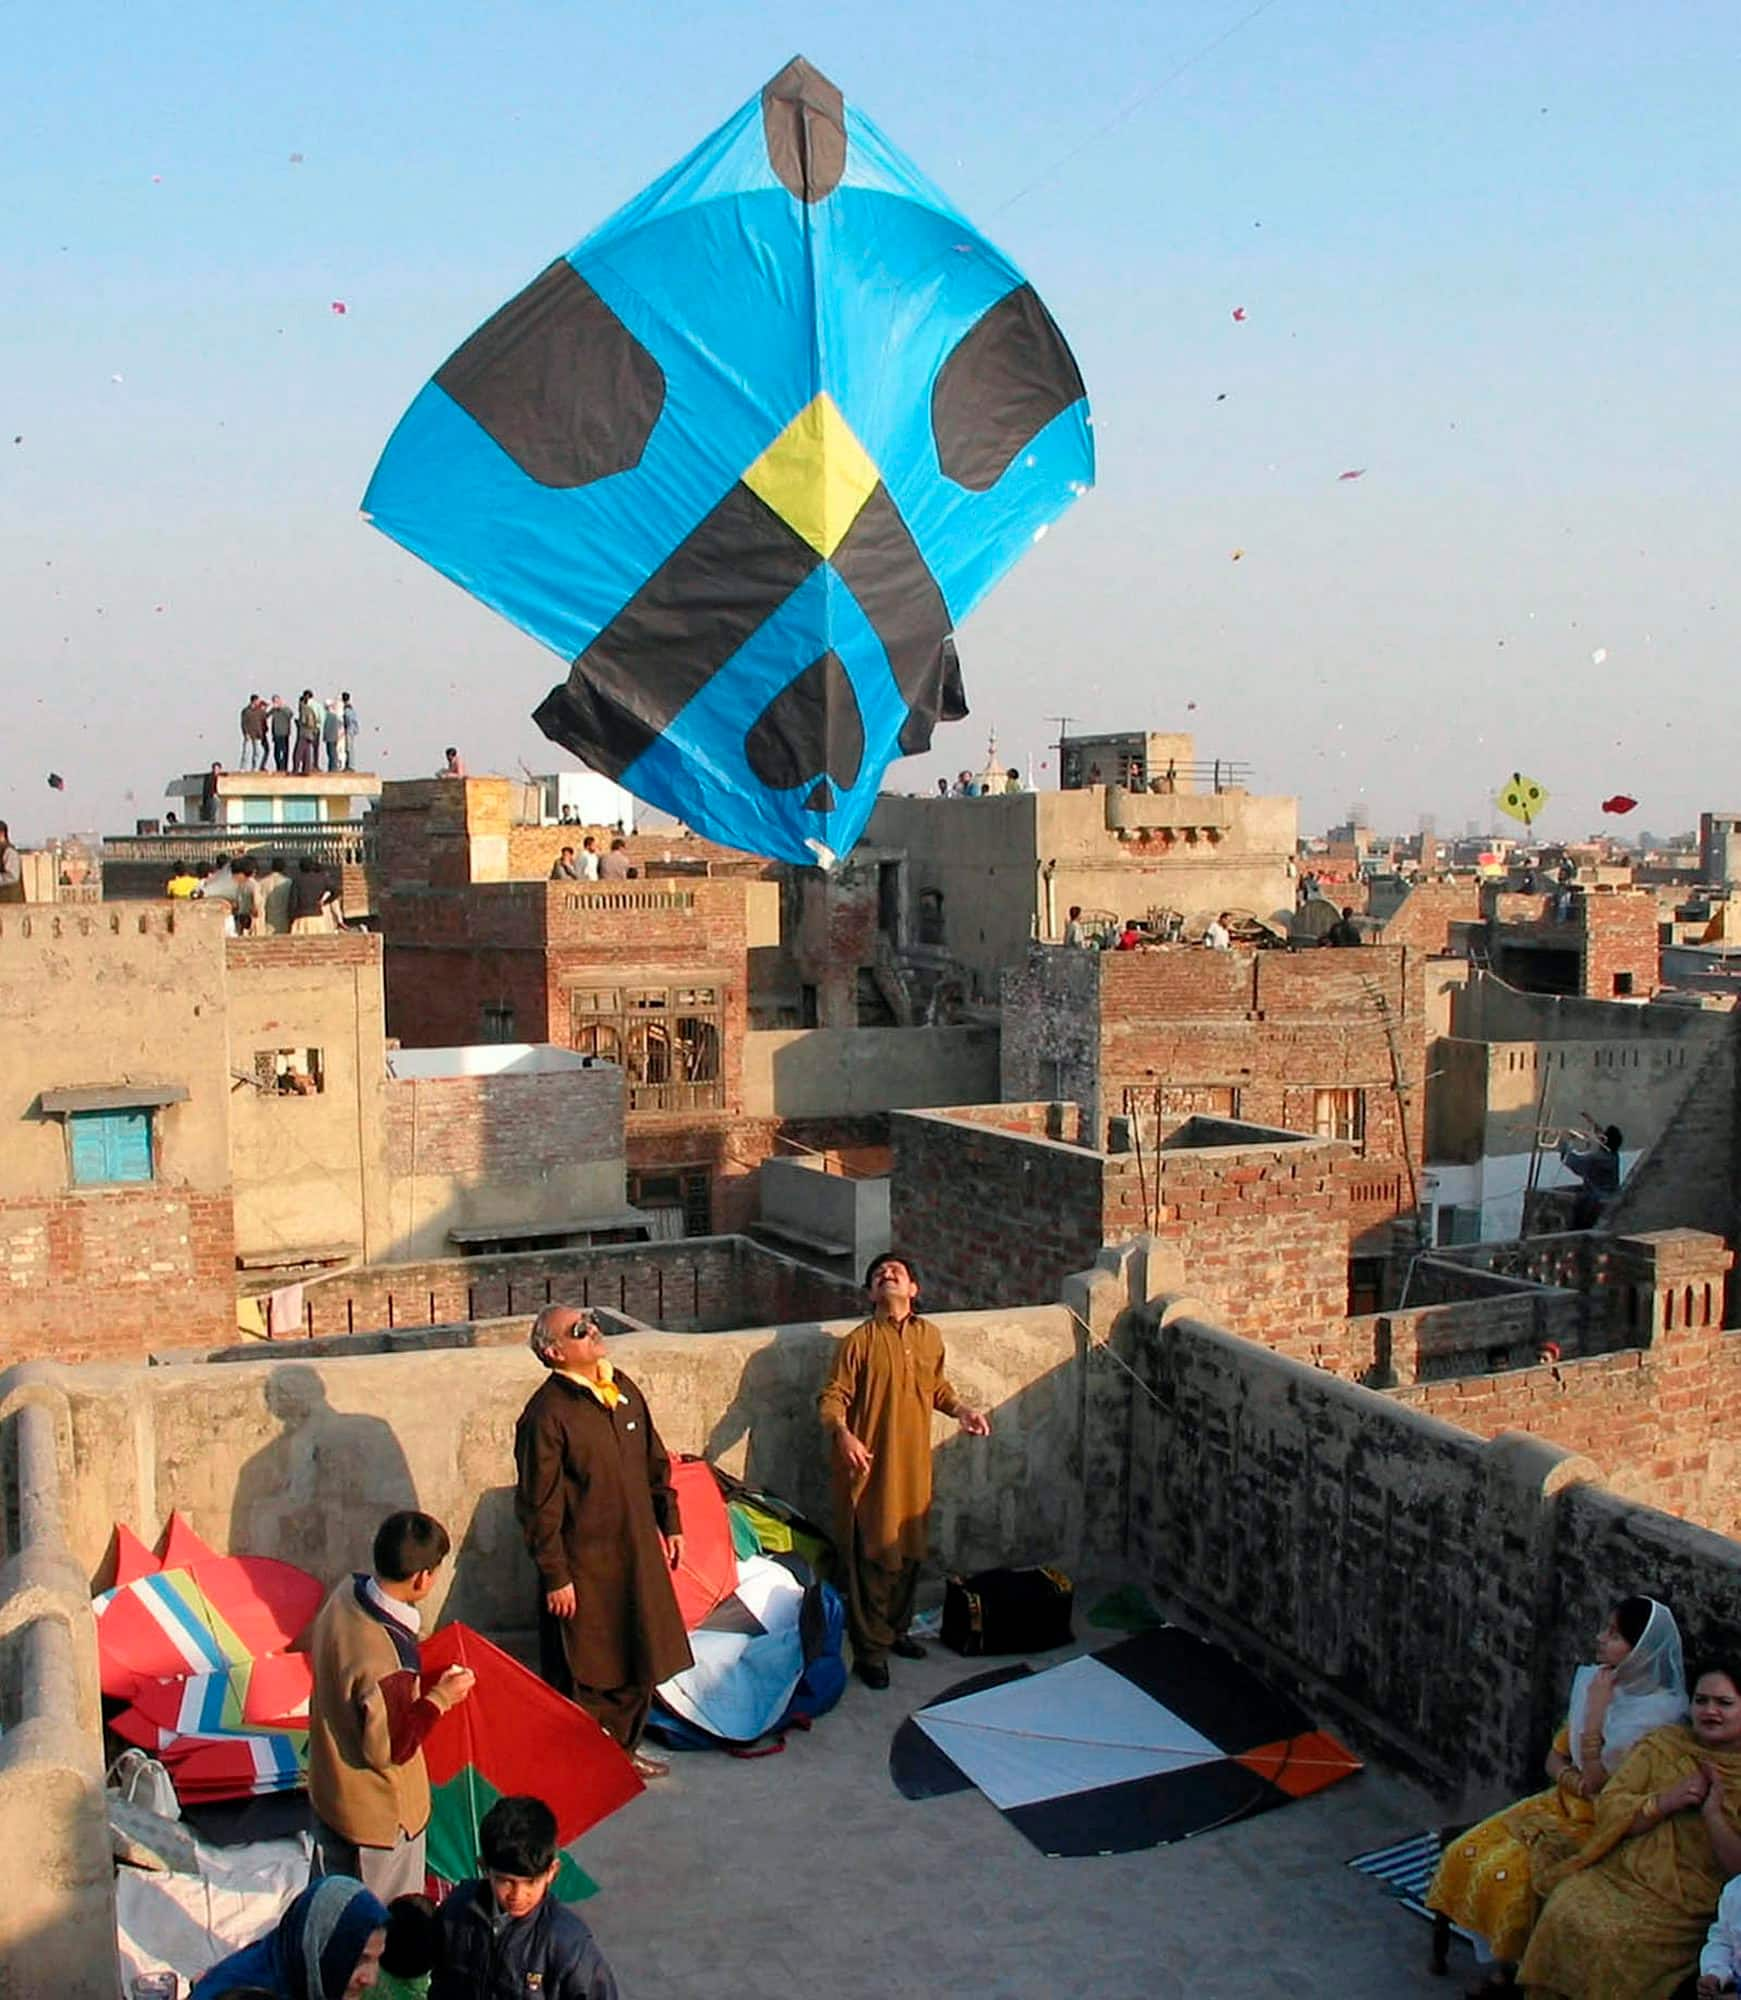 A family flies a blue and black kite on a rooftop in Lahore, Pakistan.